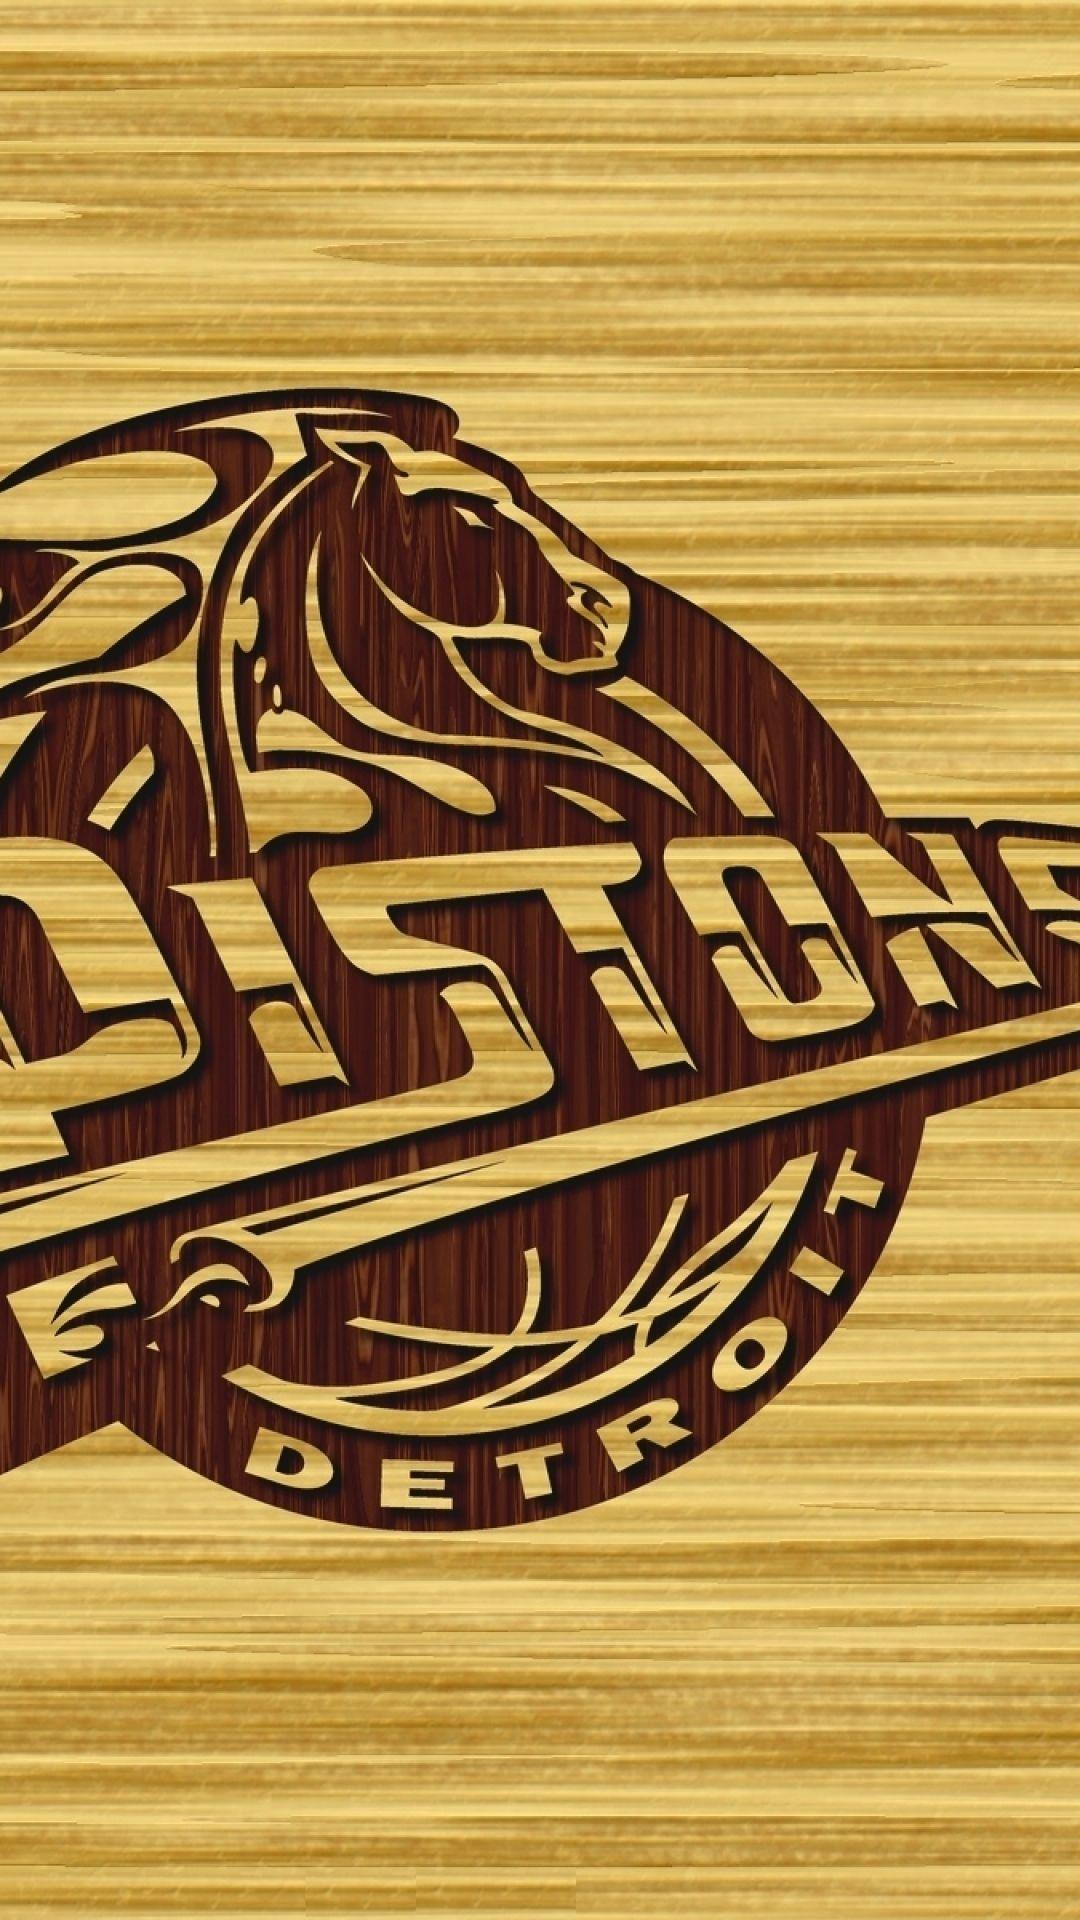 Download Wallpapers 1080x1920 Detroit pistons, Basketball, Detroit